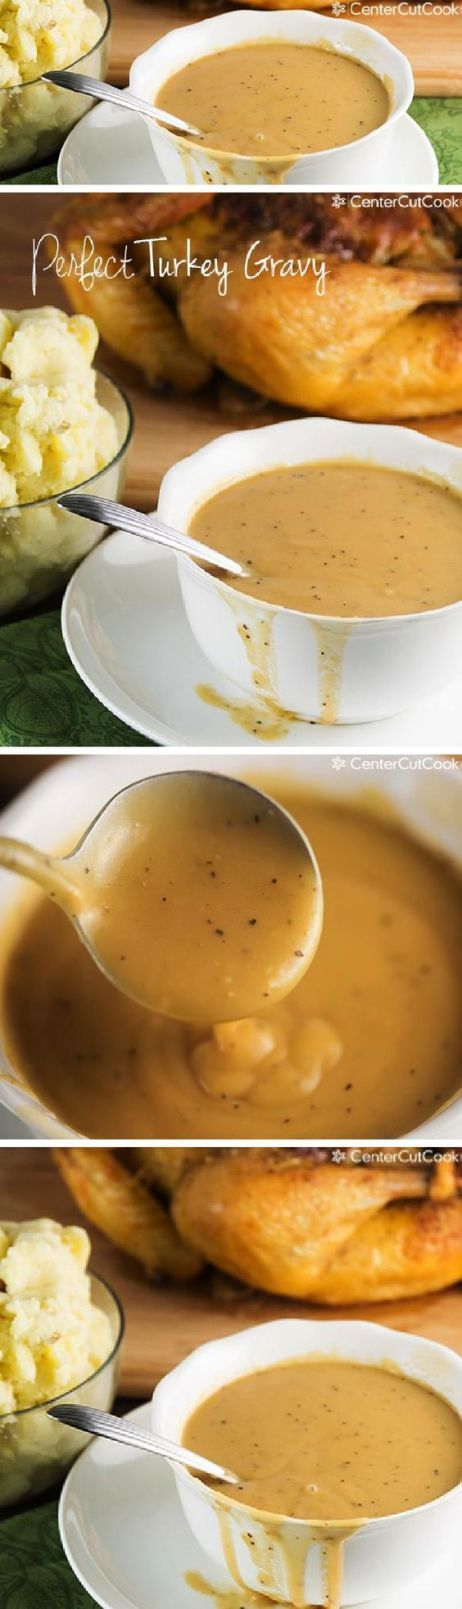 Perfect Turkey Gravy Recipe - a Thanksgiving Menu Must! | CenterCutCook - The BEST Classic, Improved and Traditional Thanksgiving Dinner Menu Favorites Recipes - Main Dishes, Side Dishes, Appetizers, Salads, Yummy Desserts and more!